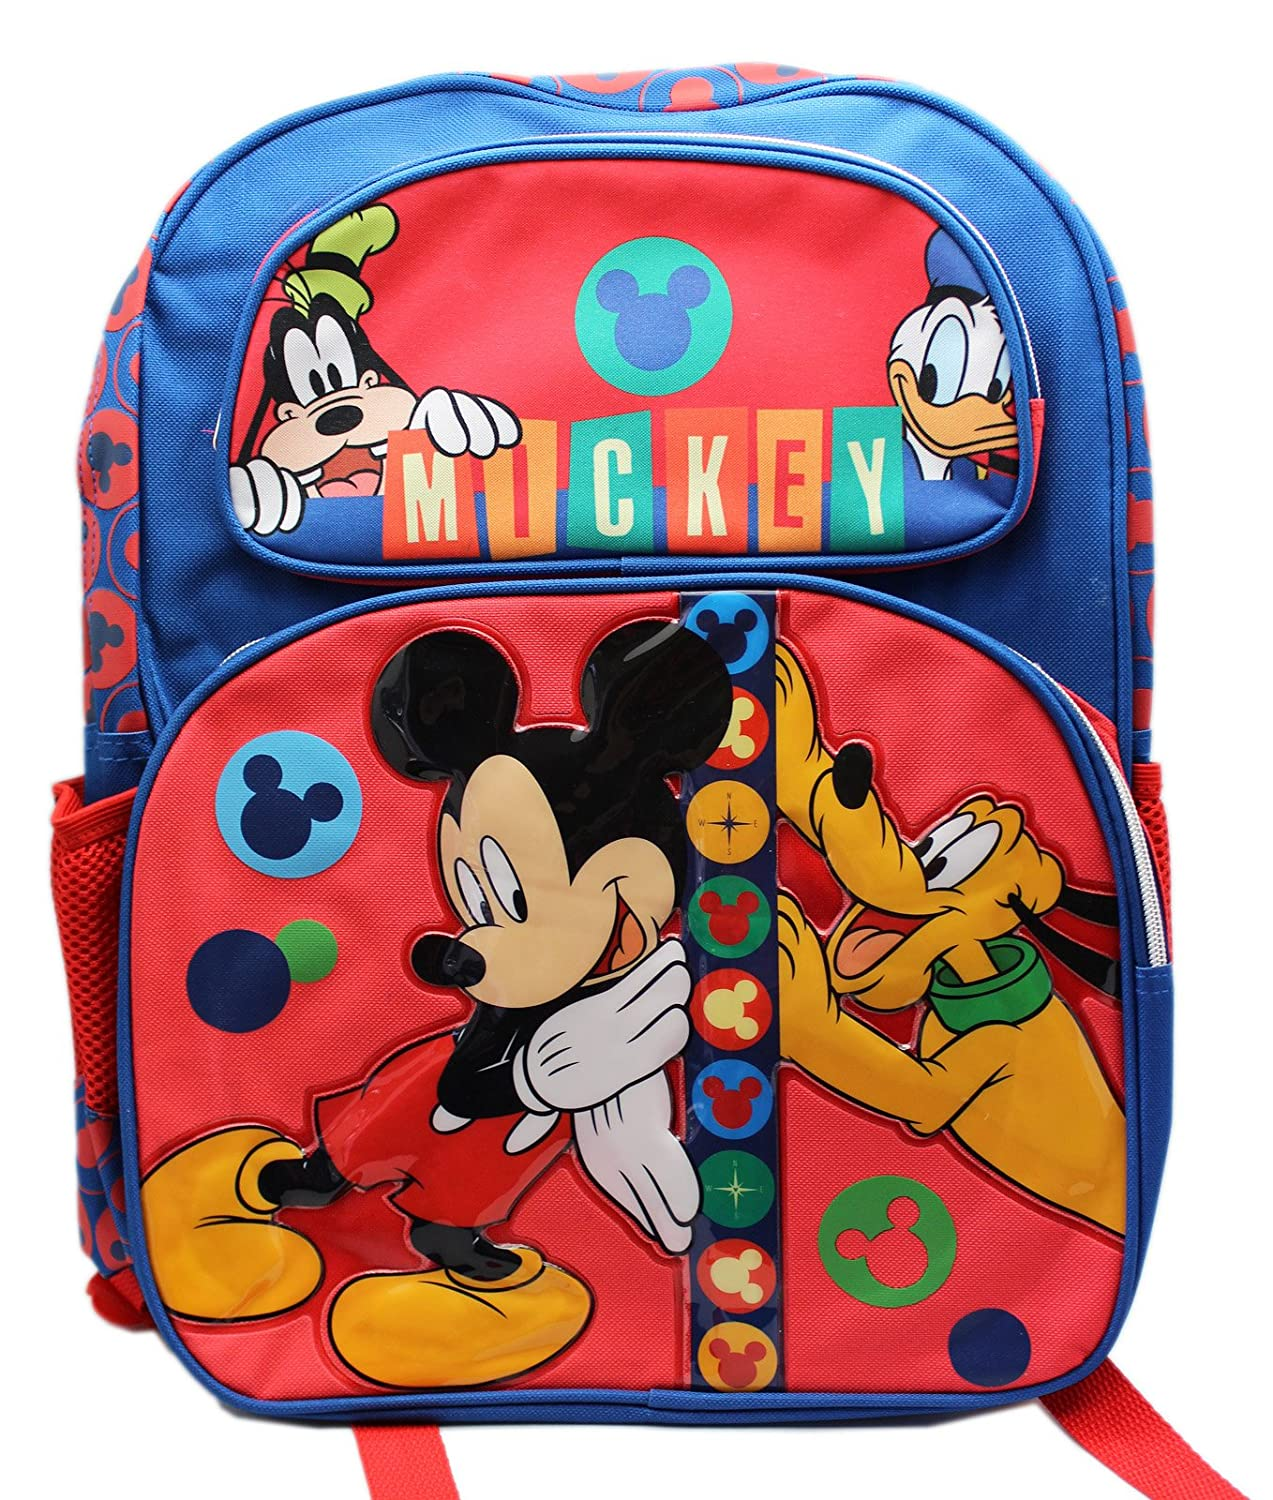 Backpack - Disney - Mickey Mouse and Friends New School Bag 652739 B00ZVFH2GY